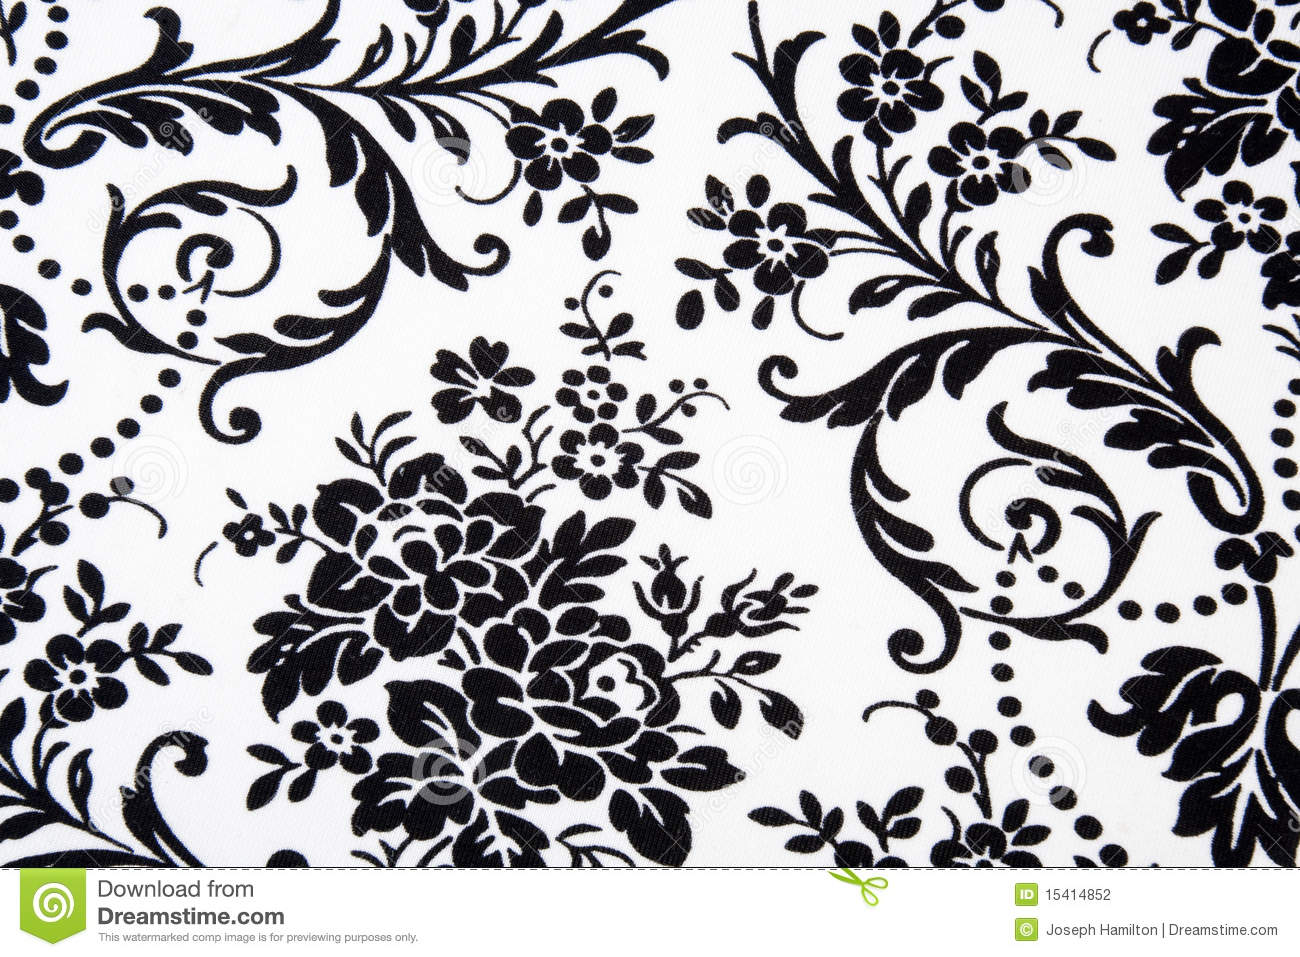 14 Black And White Floral Designs Images Black And White Flower